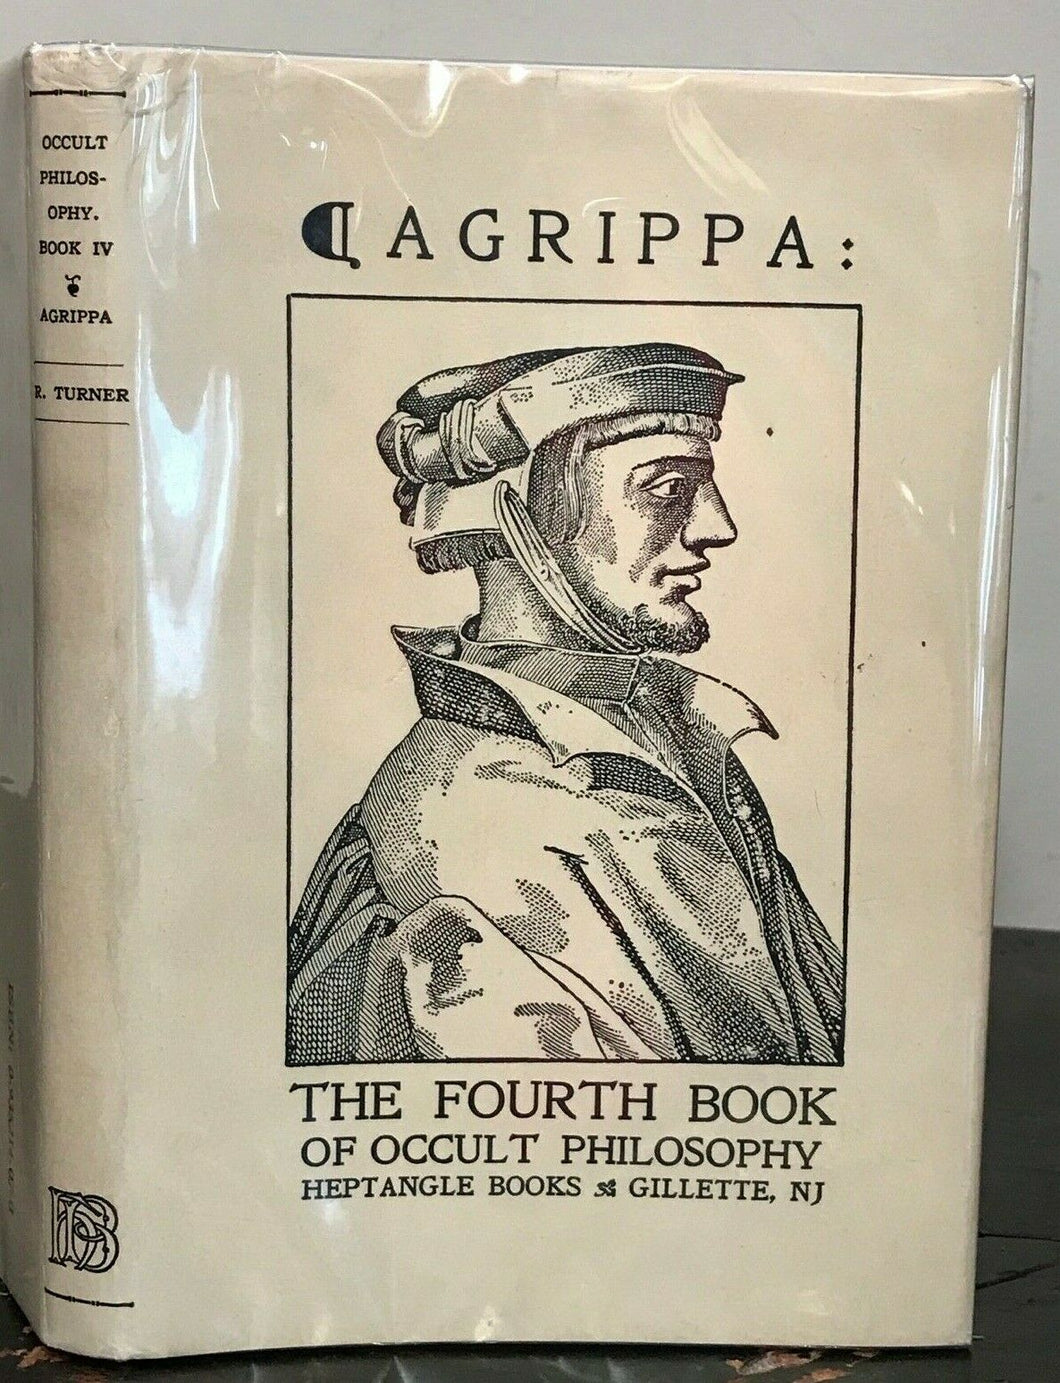 AGRIPPA: OCCULT PHILOSOPHY BOOK FOUR. MAGICAL CEREMONIES. 1985, Heptangle Books